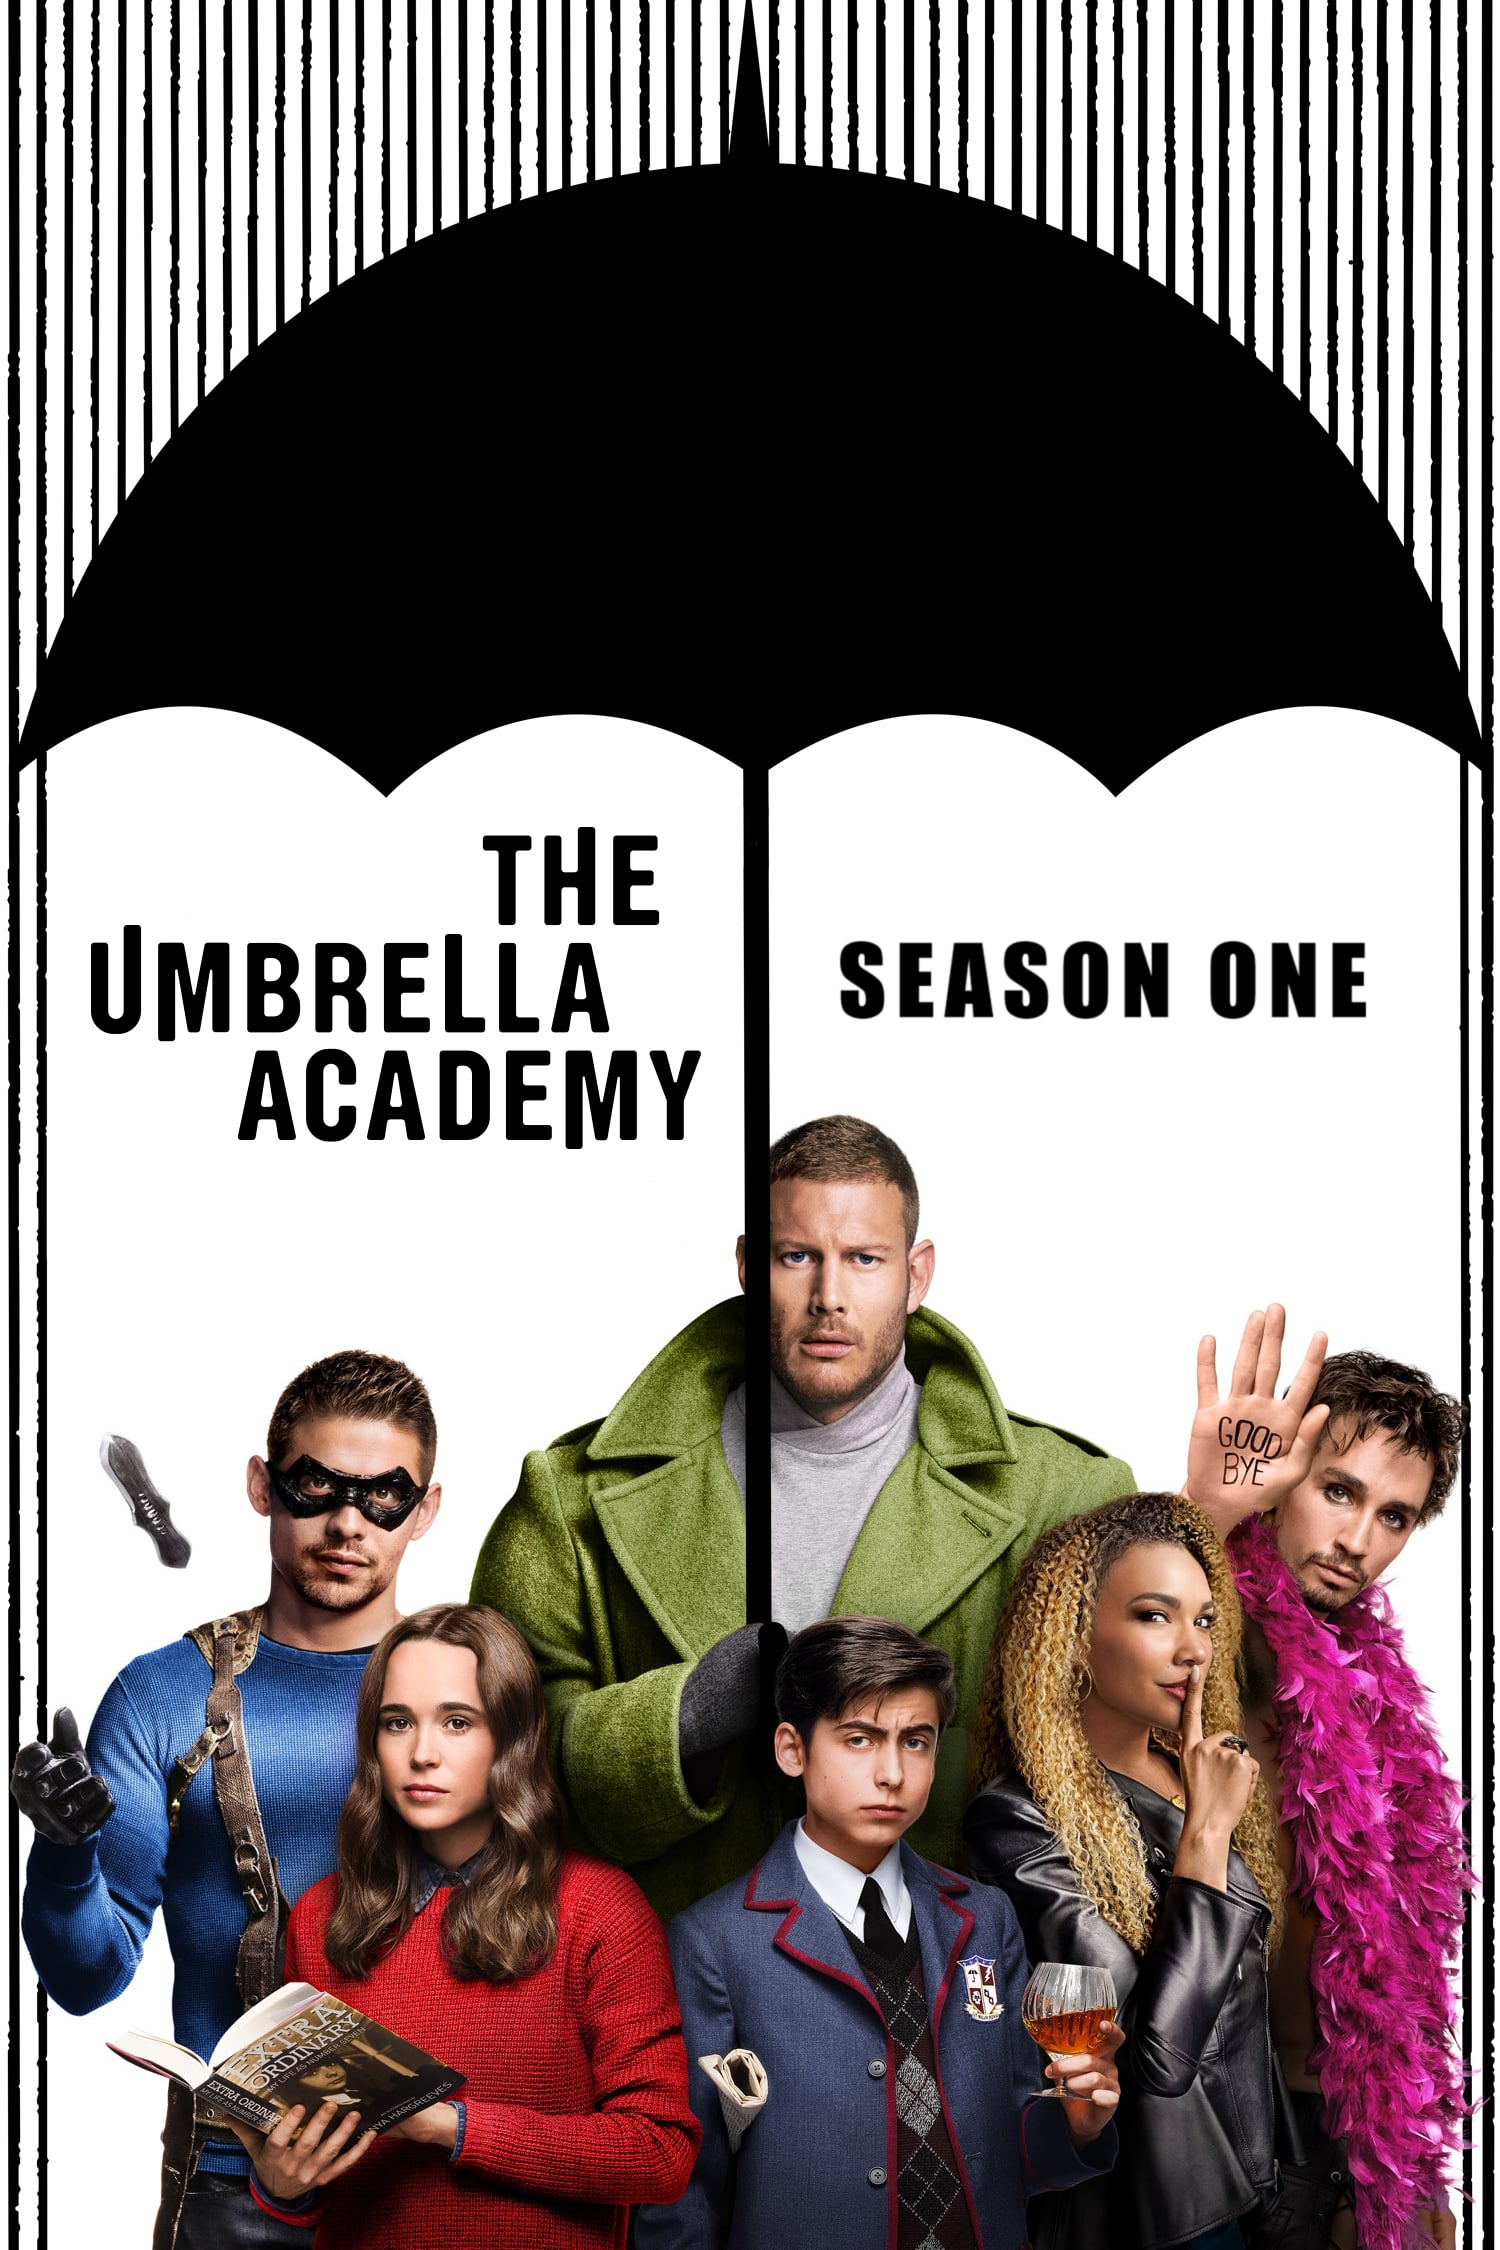 The Umbrella Academy: Season 1 (2019)